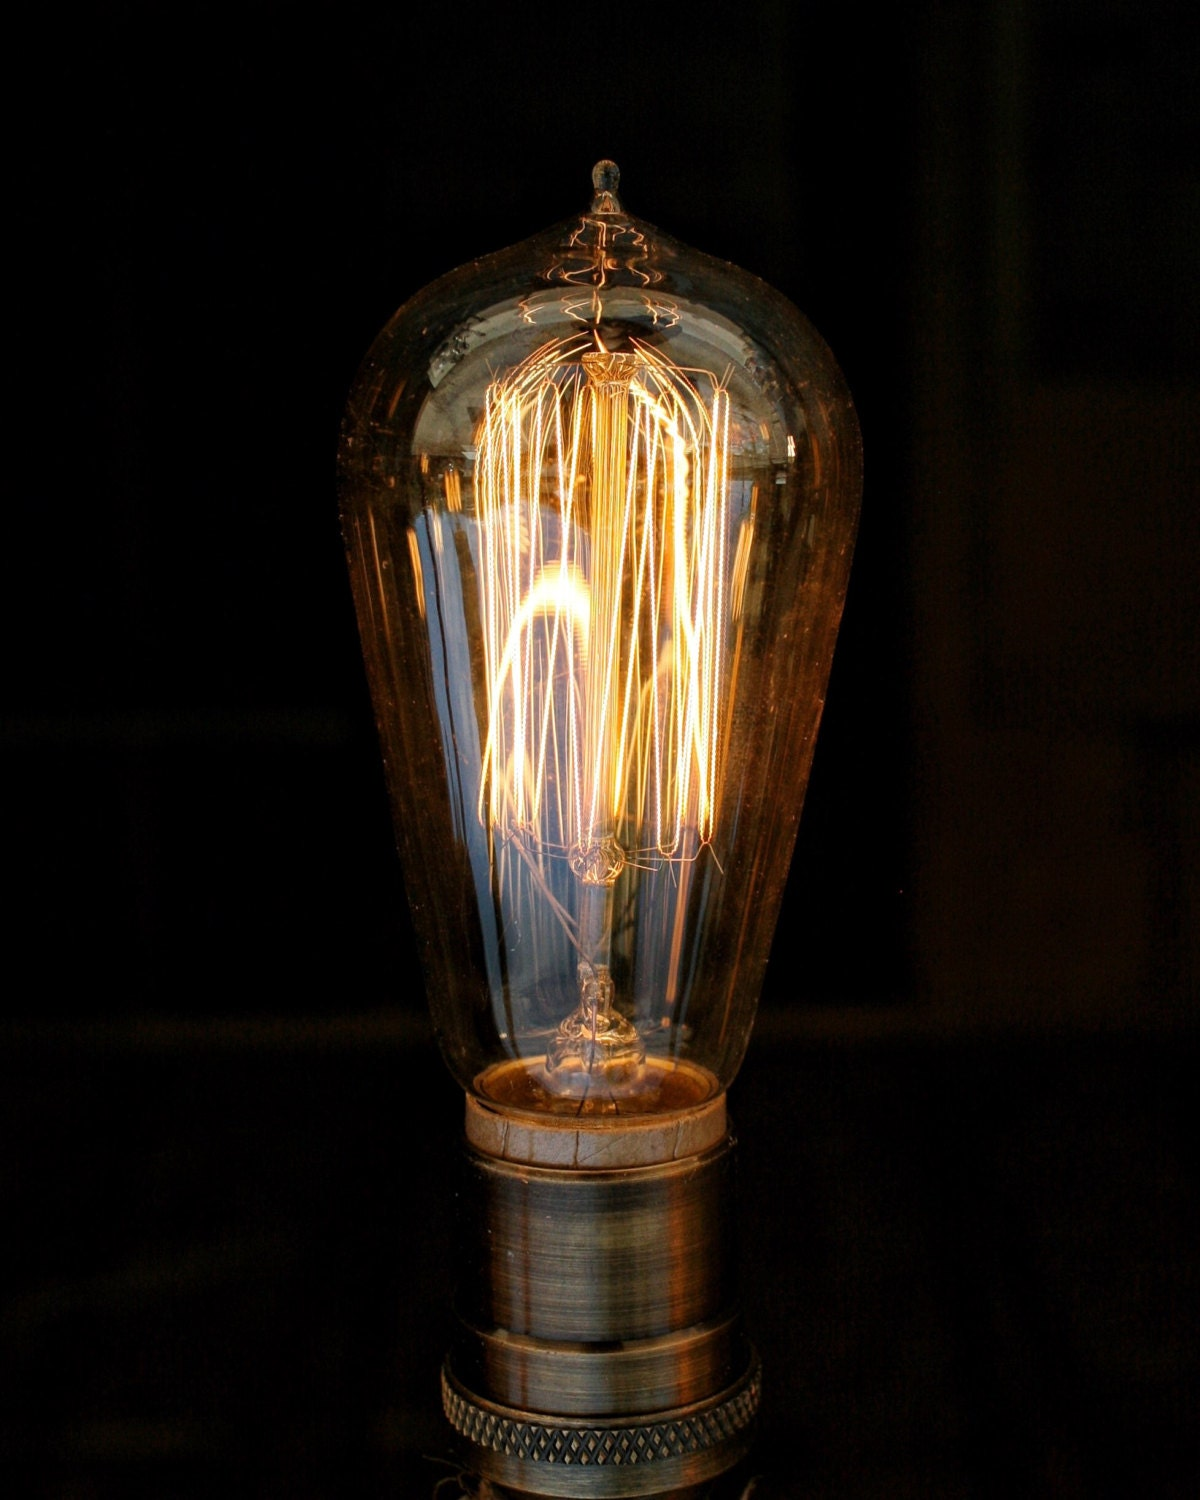 Edison Bulbs Vintage Bulbs Lights Globe Bulb by MoonStoneFox